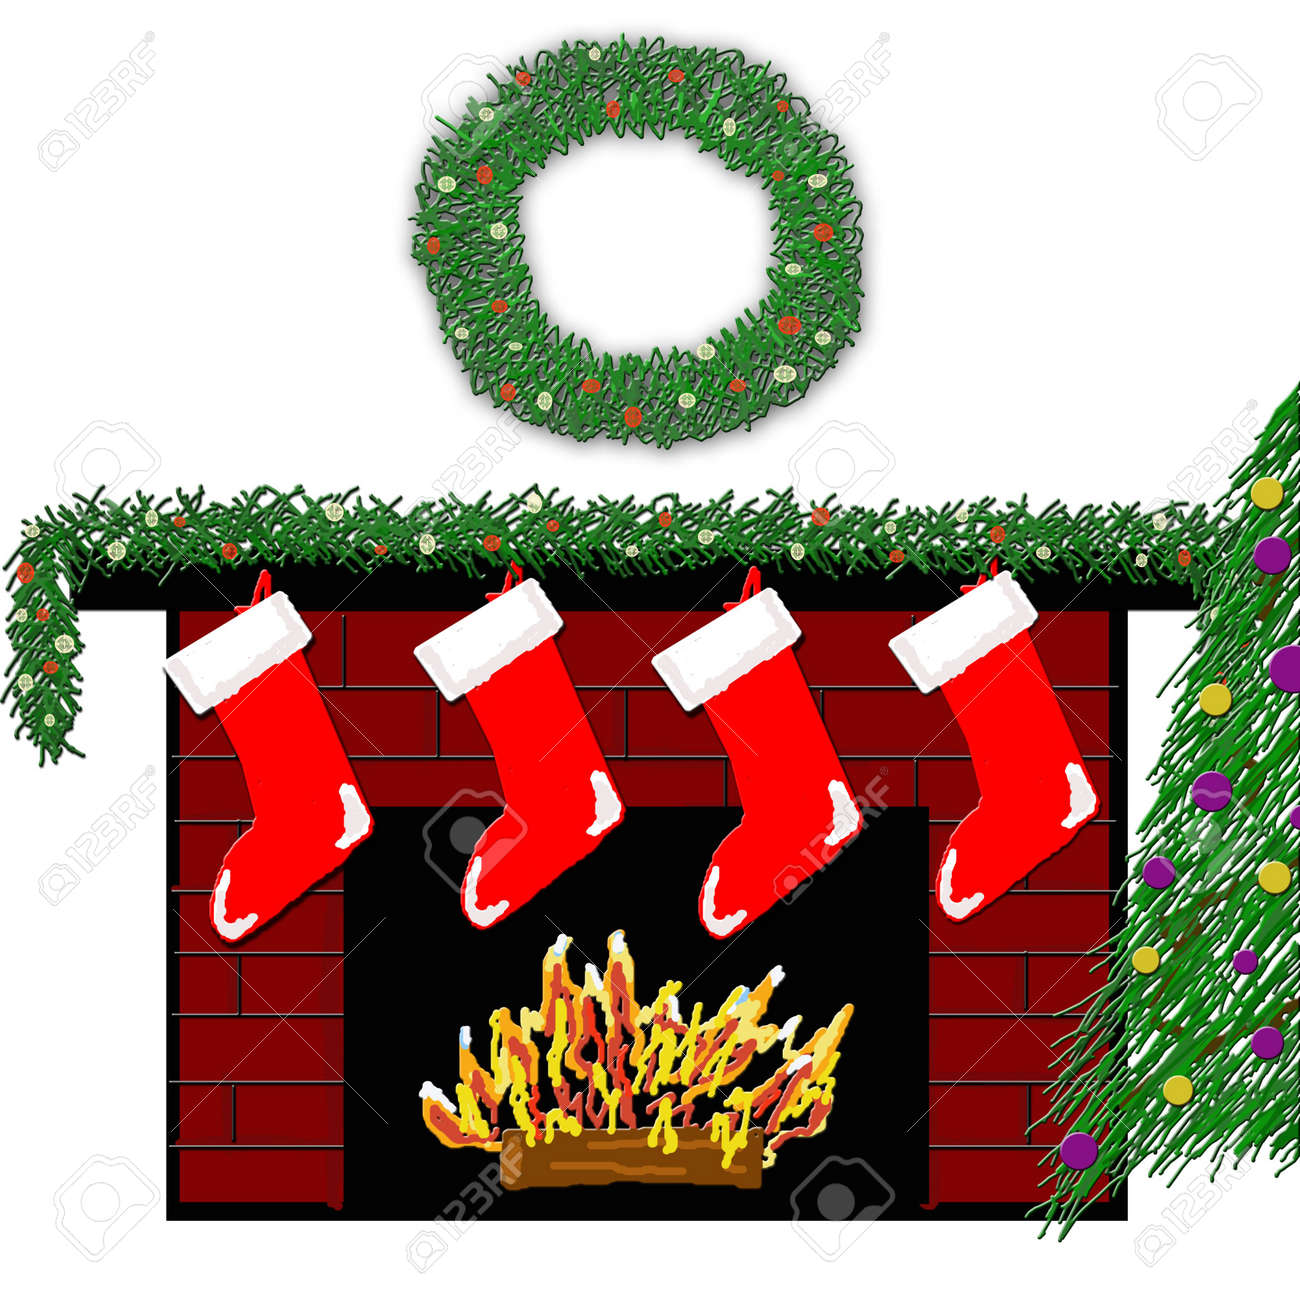 a red brick fireplace decorated with stockings garland and wreath with a cozy fire beneath